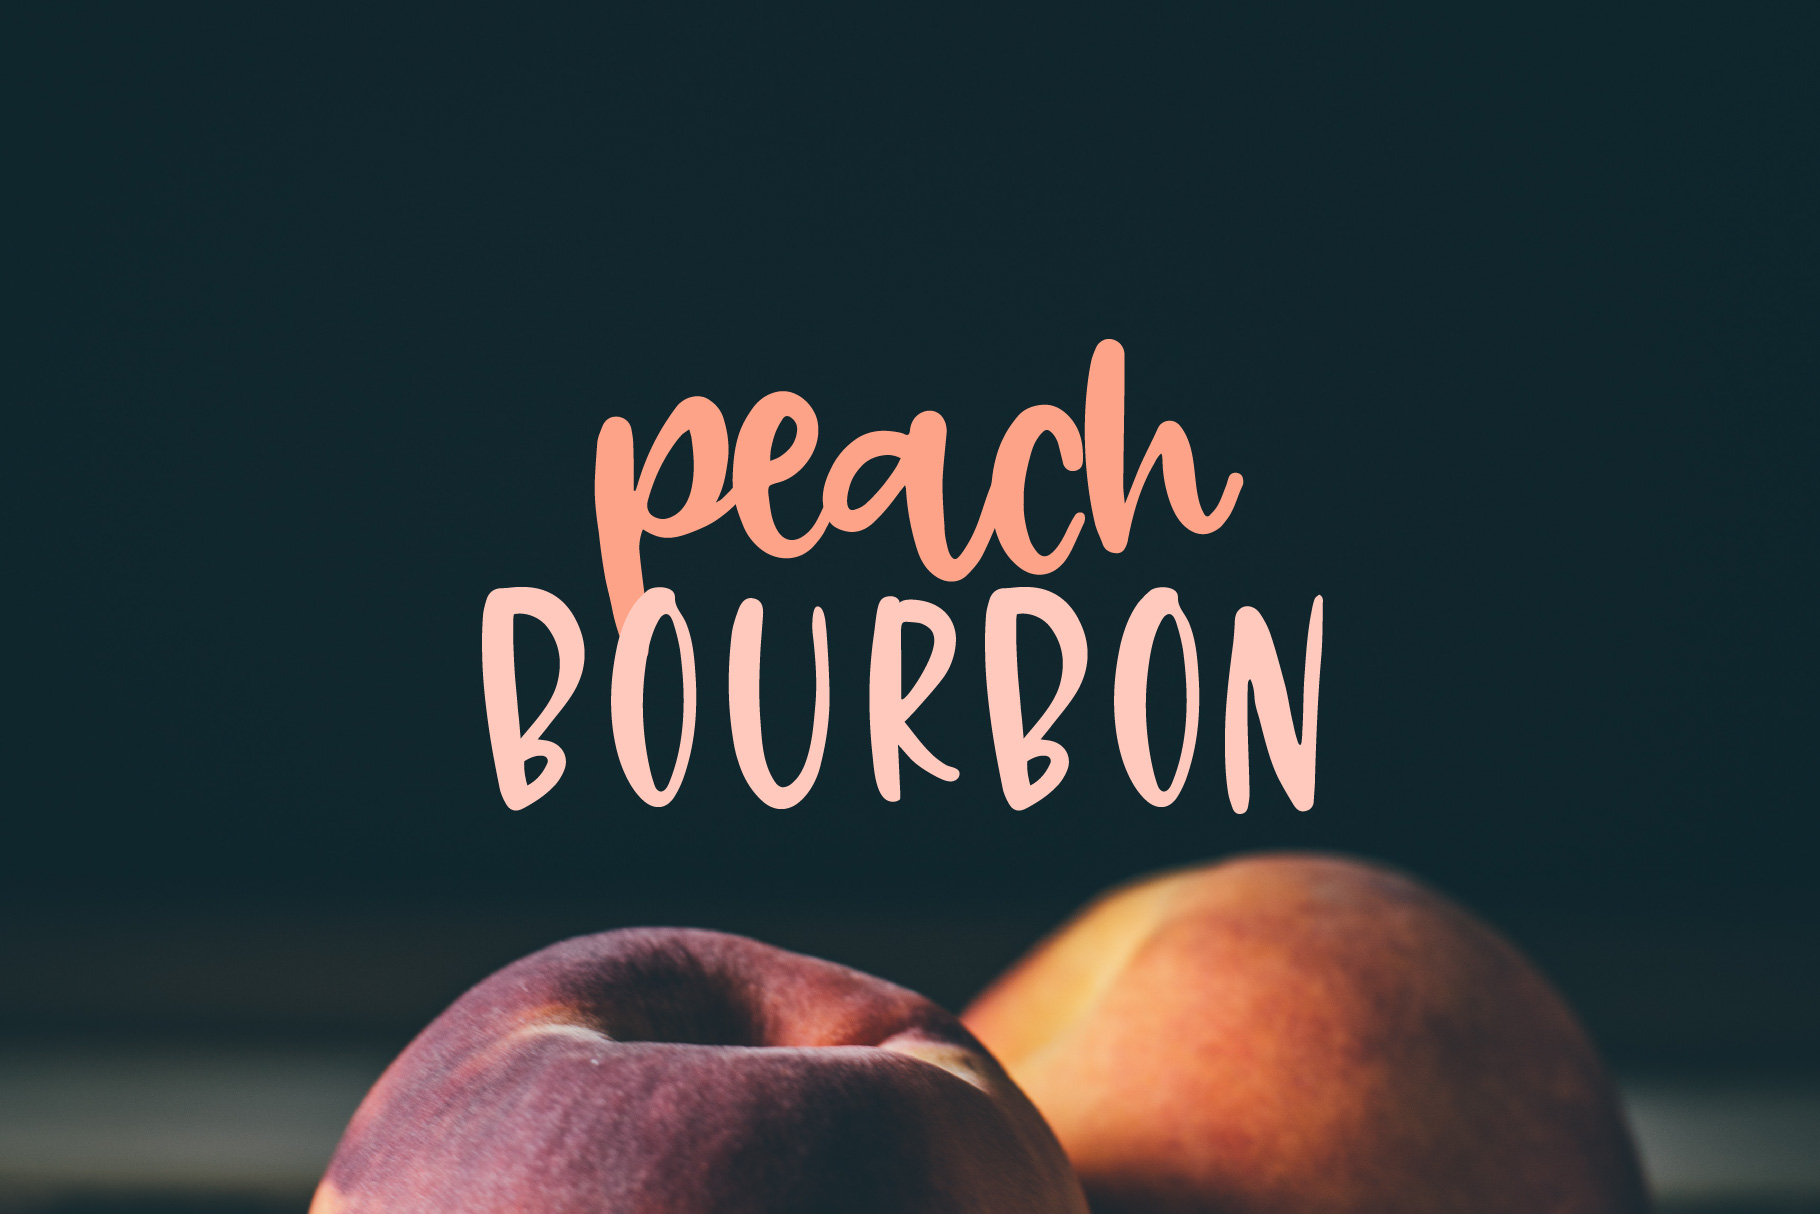 Peach Bourbon example image 1